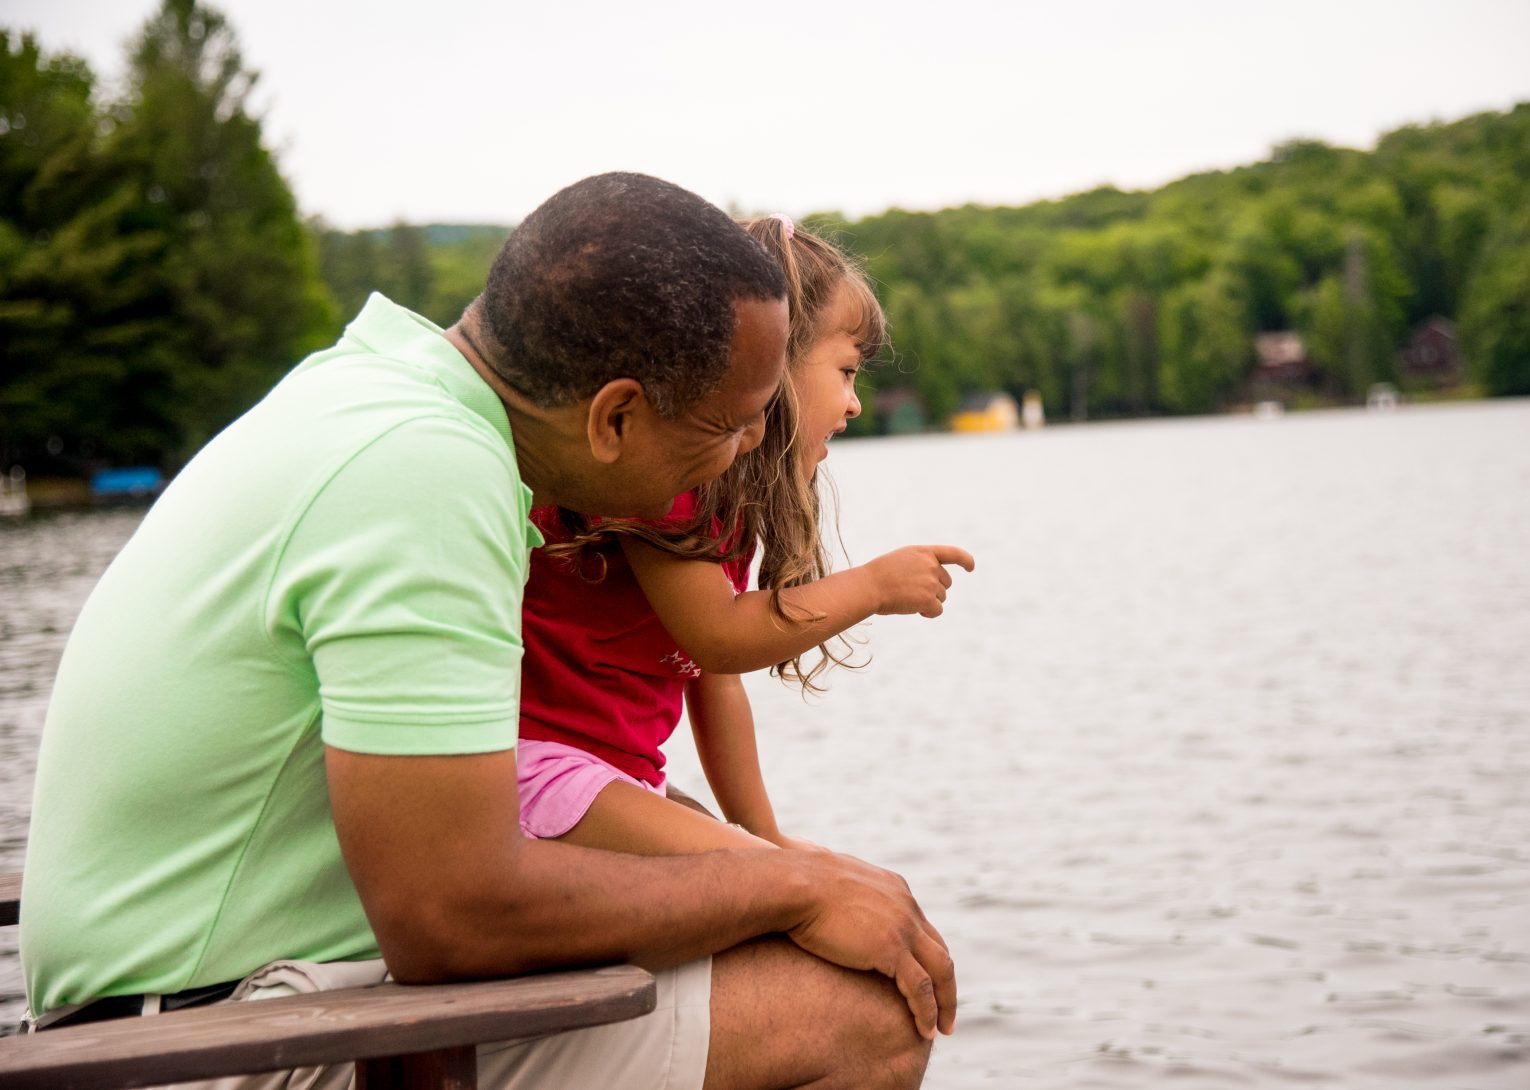 A dad and his daughter sitting in an Adirondack chair on a dock smiling out at the lake on a summer day